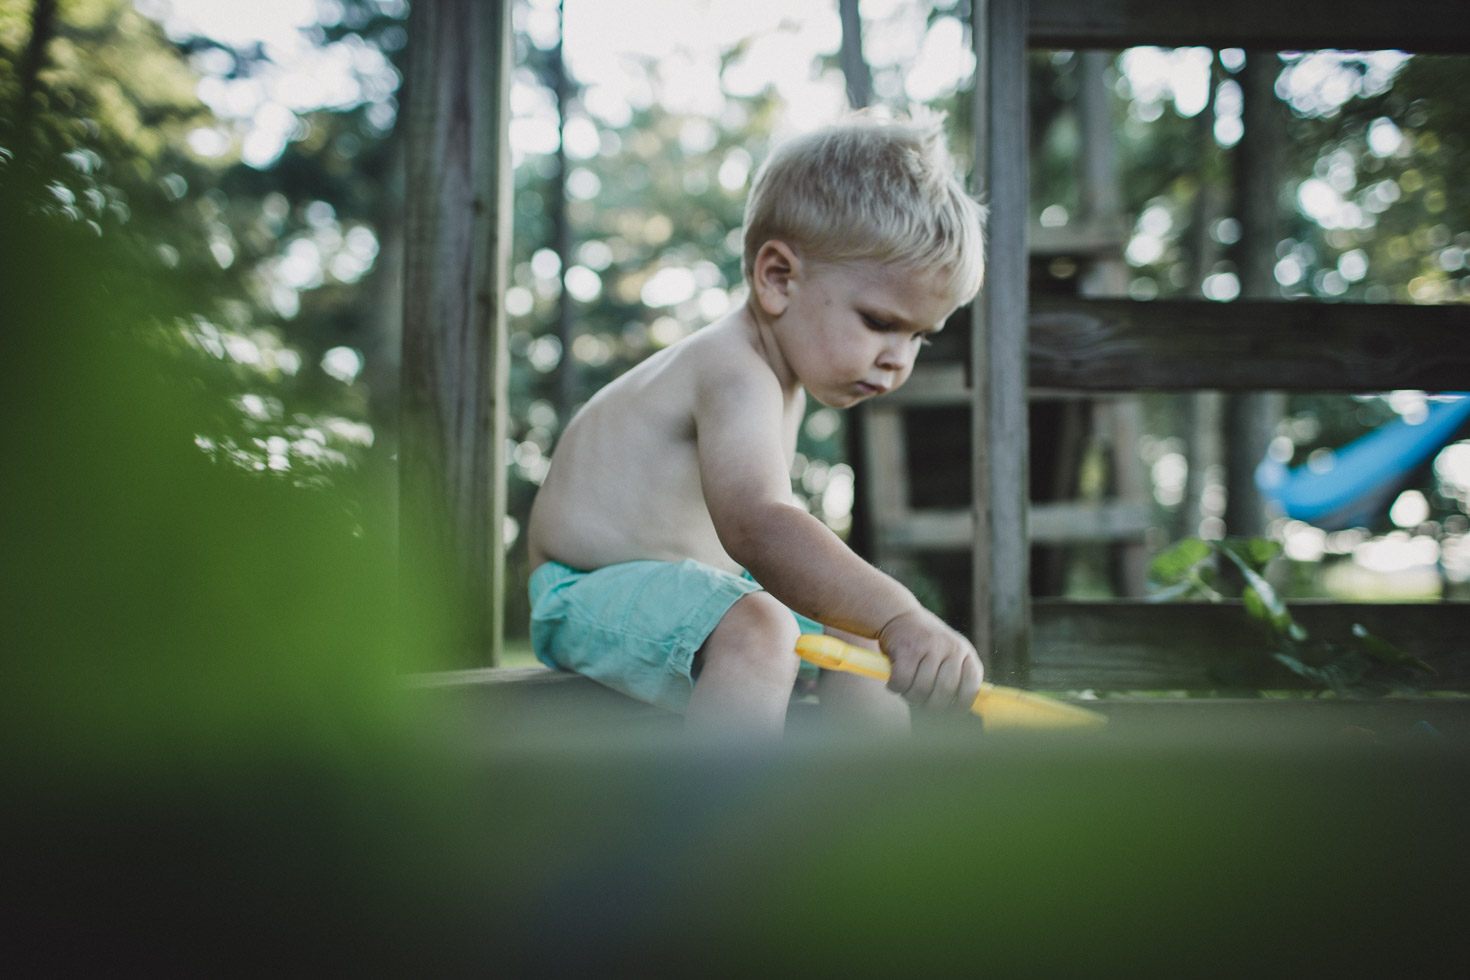 Layered image of boy playing in sandbox